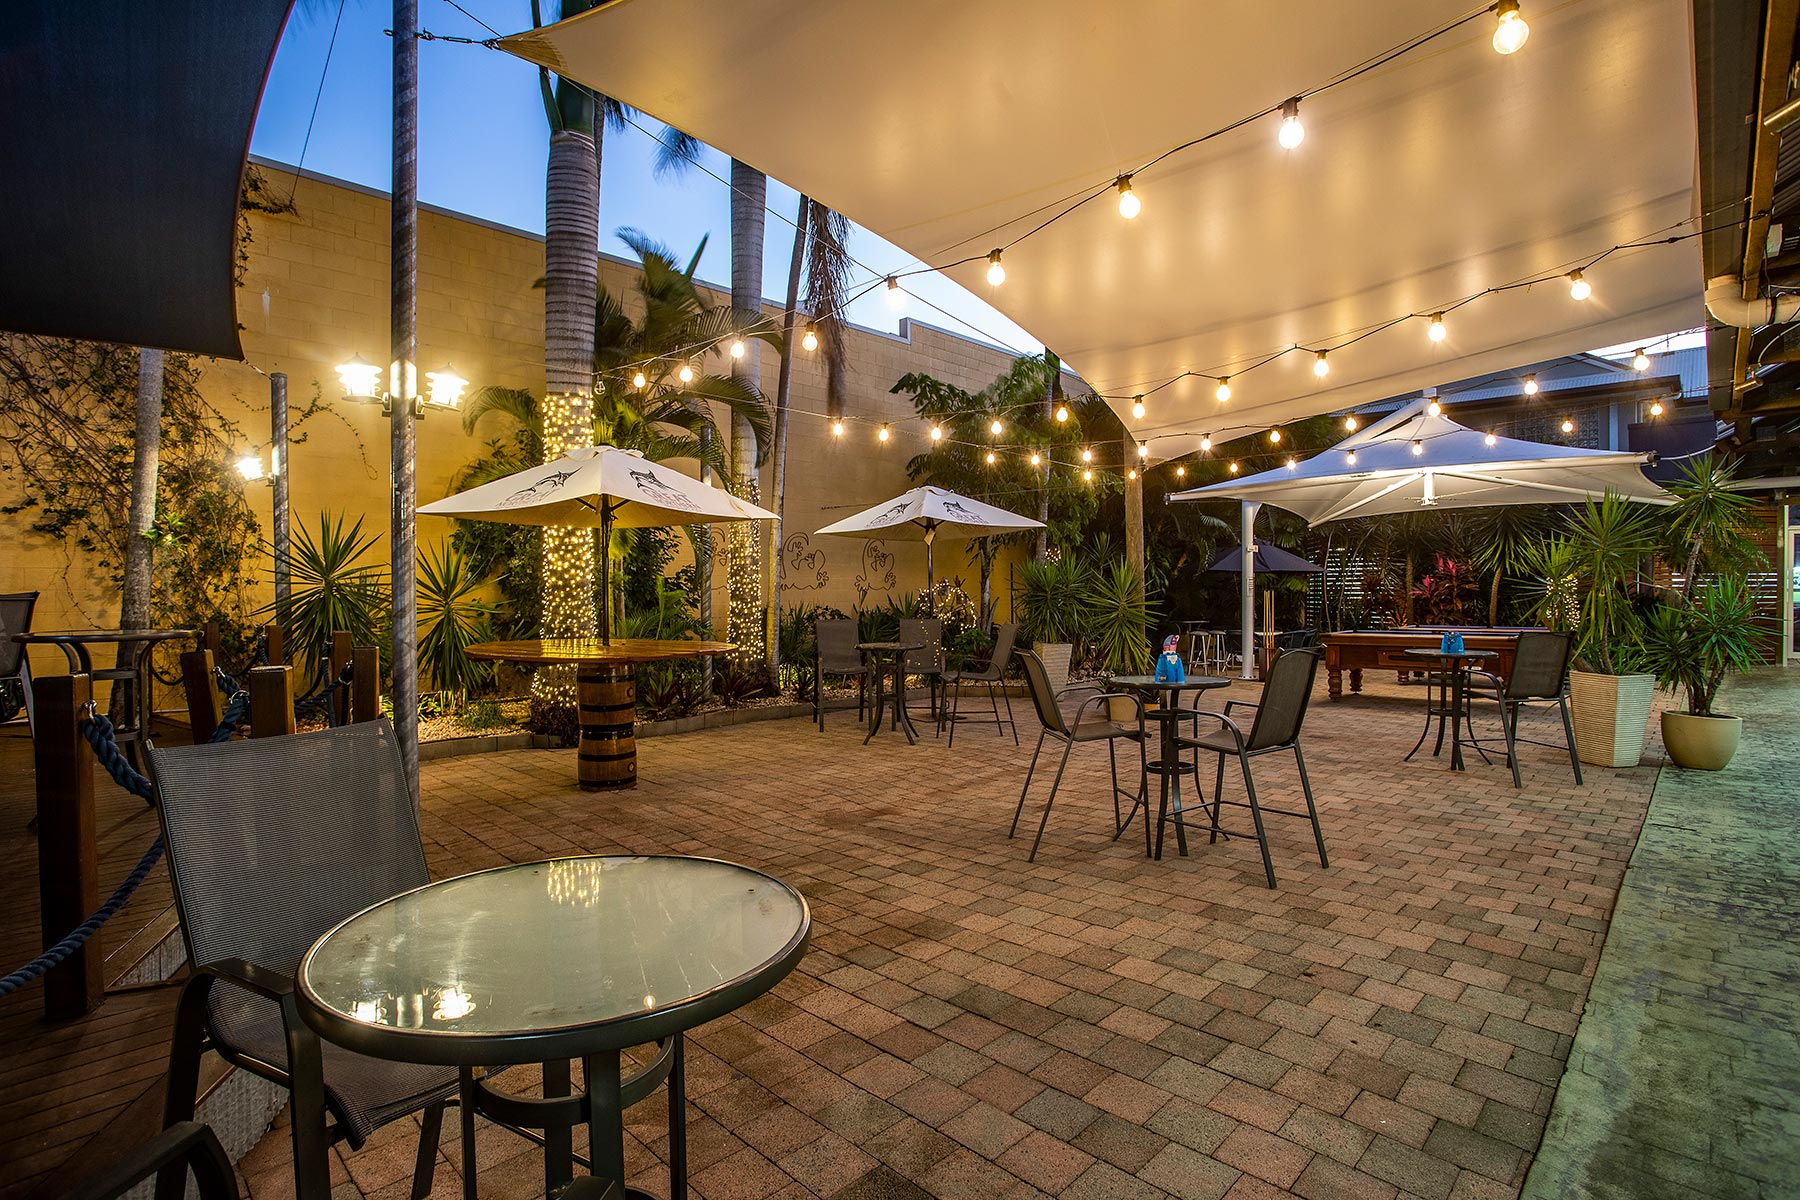 The Golden Gecko Hotel beer garden